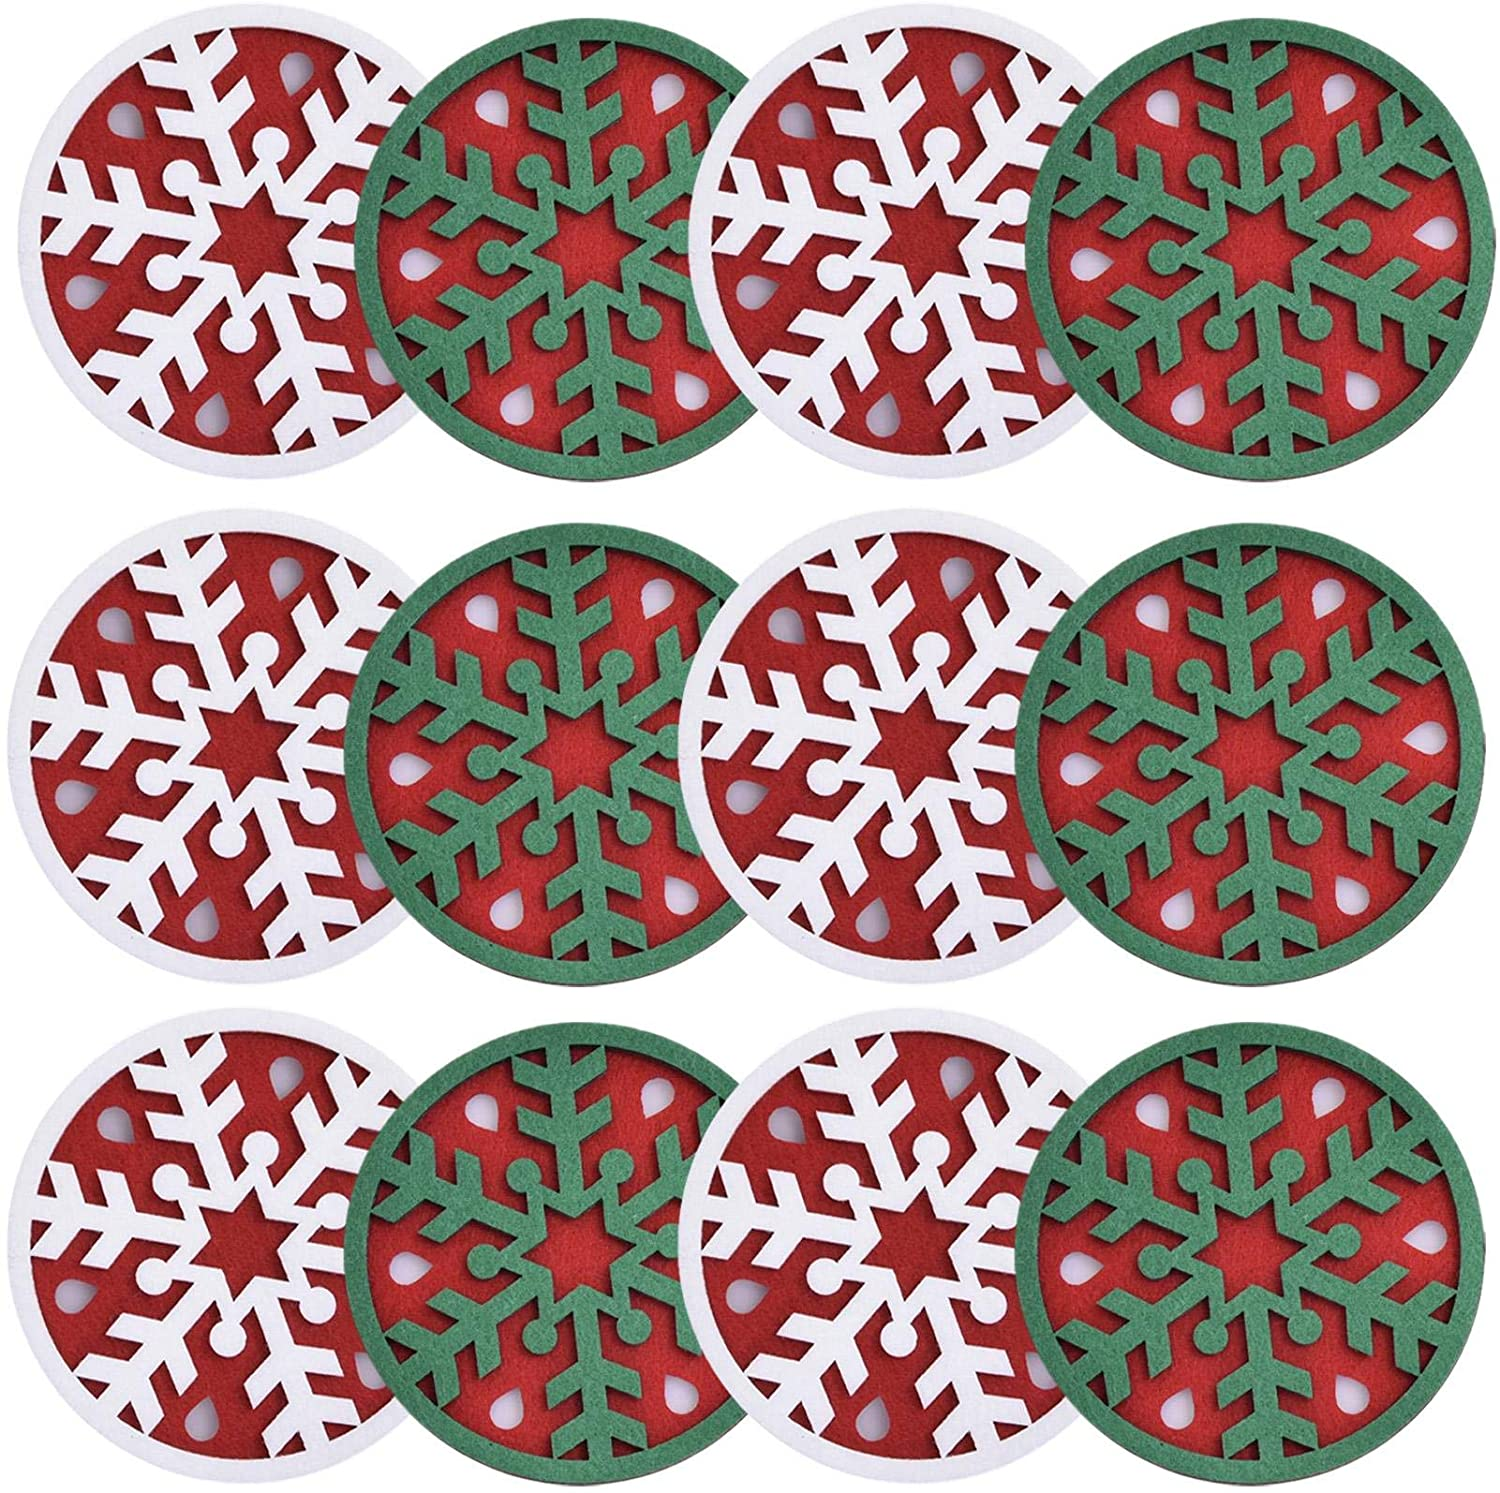 12Pcs Christmas Felt Coasters, Absorbent Felt Cup Pad, Drink Cup Mat, 3.9'' Three Dimensional Coaster For Coffee Cups, Glasses, Champagne Glasses